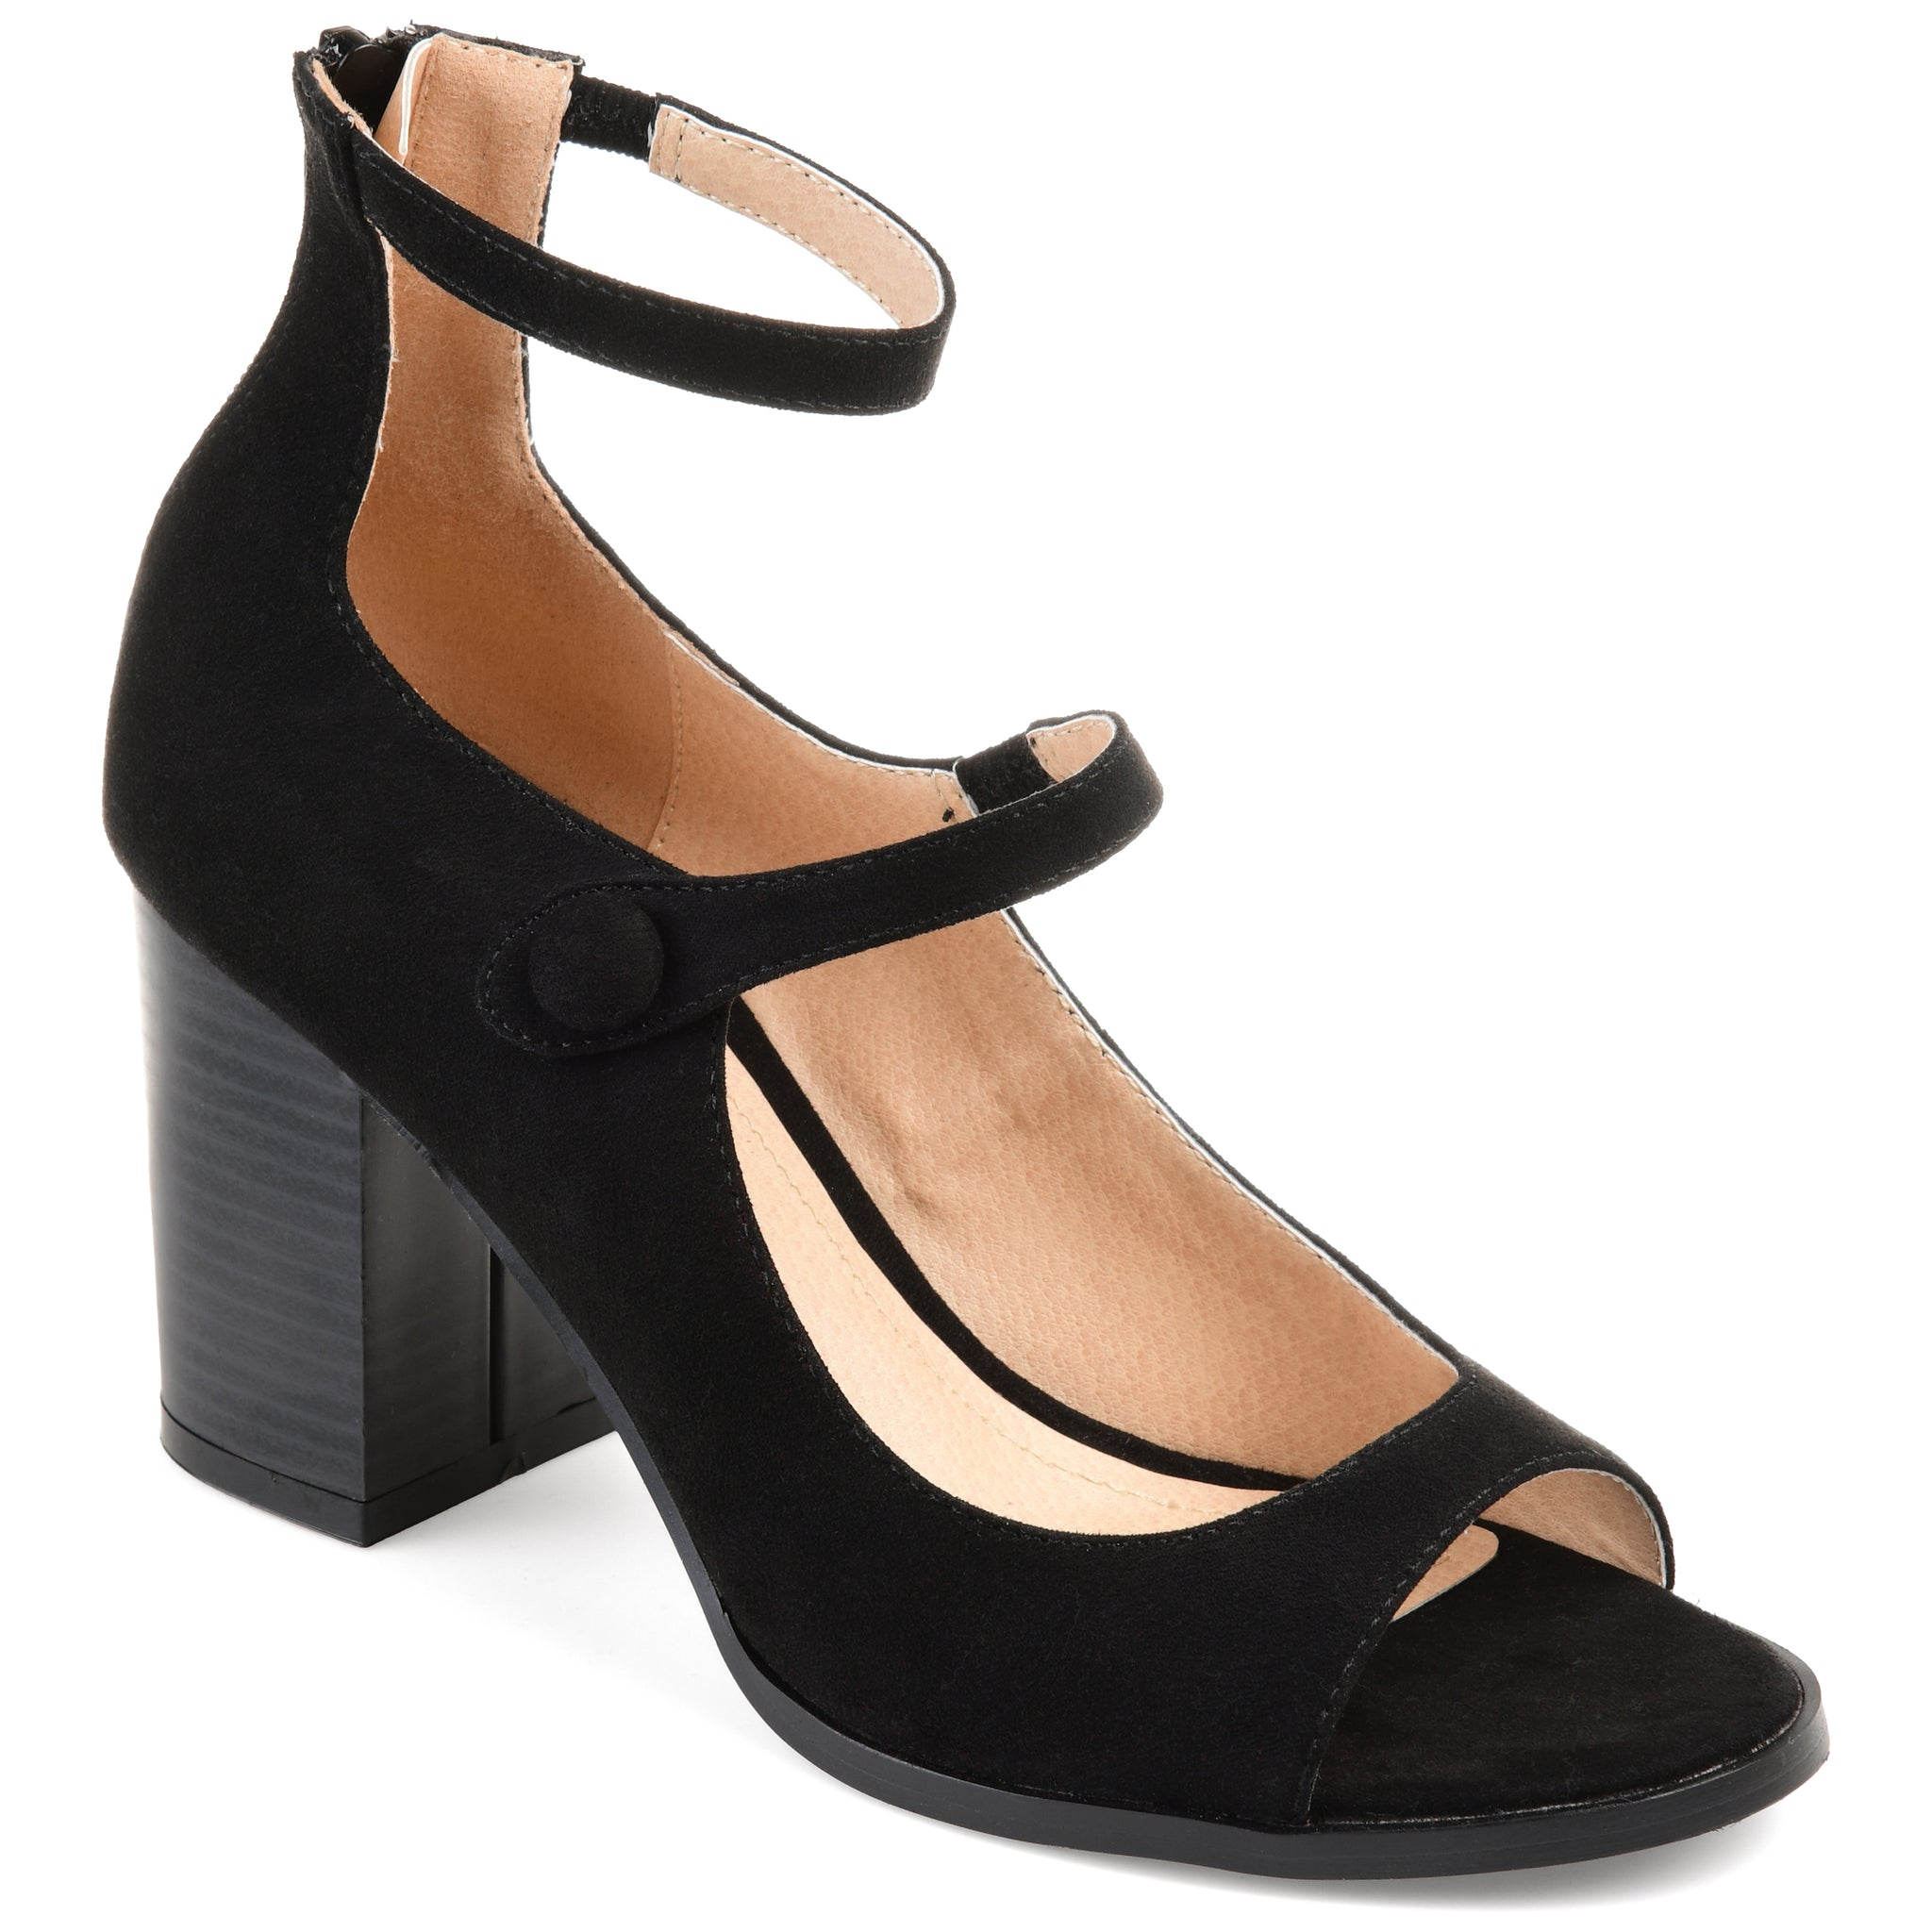 Strappy Open Toe Block Heel